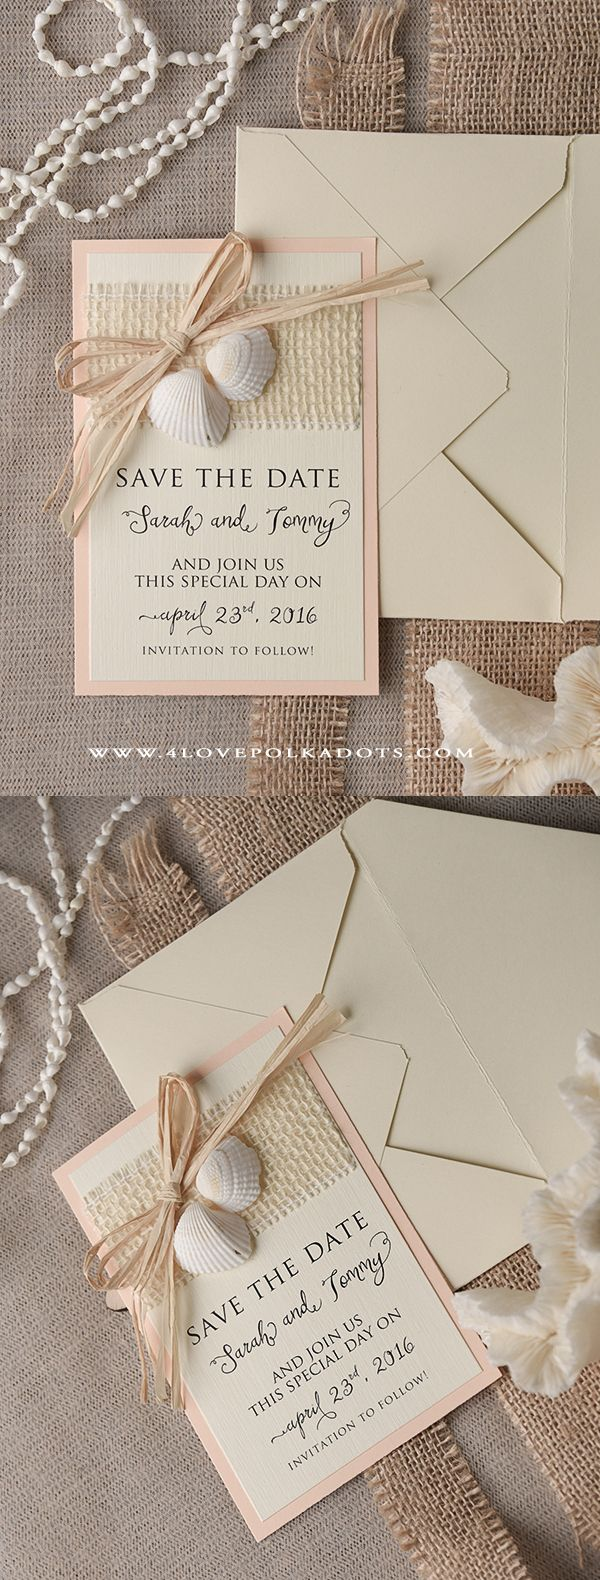 Please Save the Date Beach Wedding